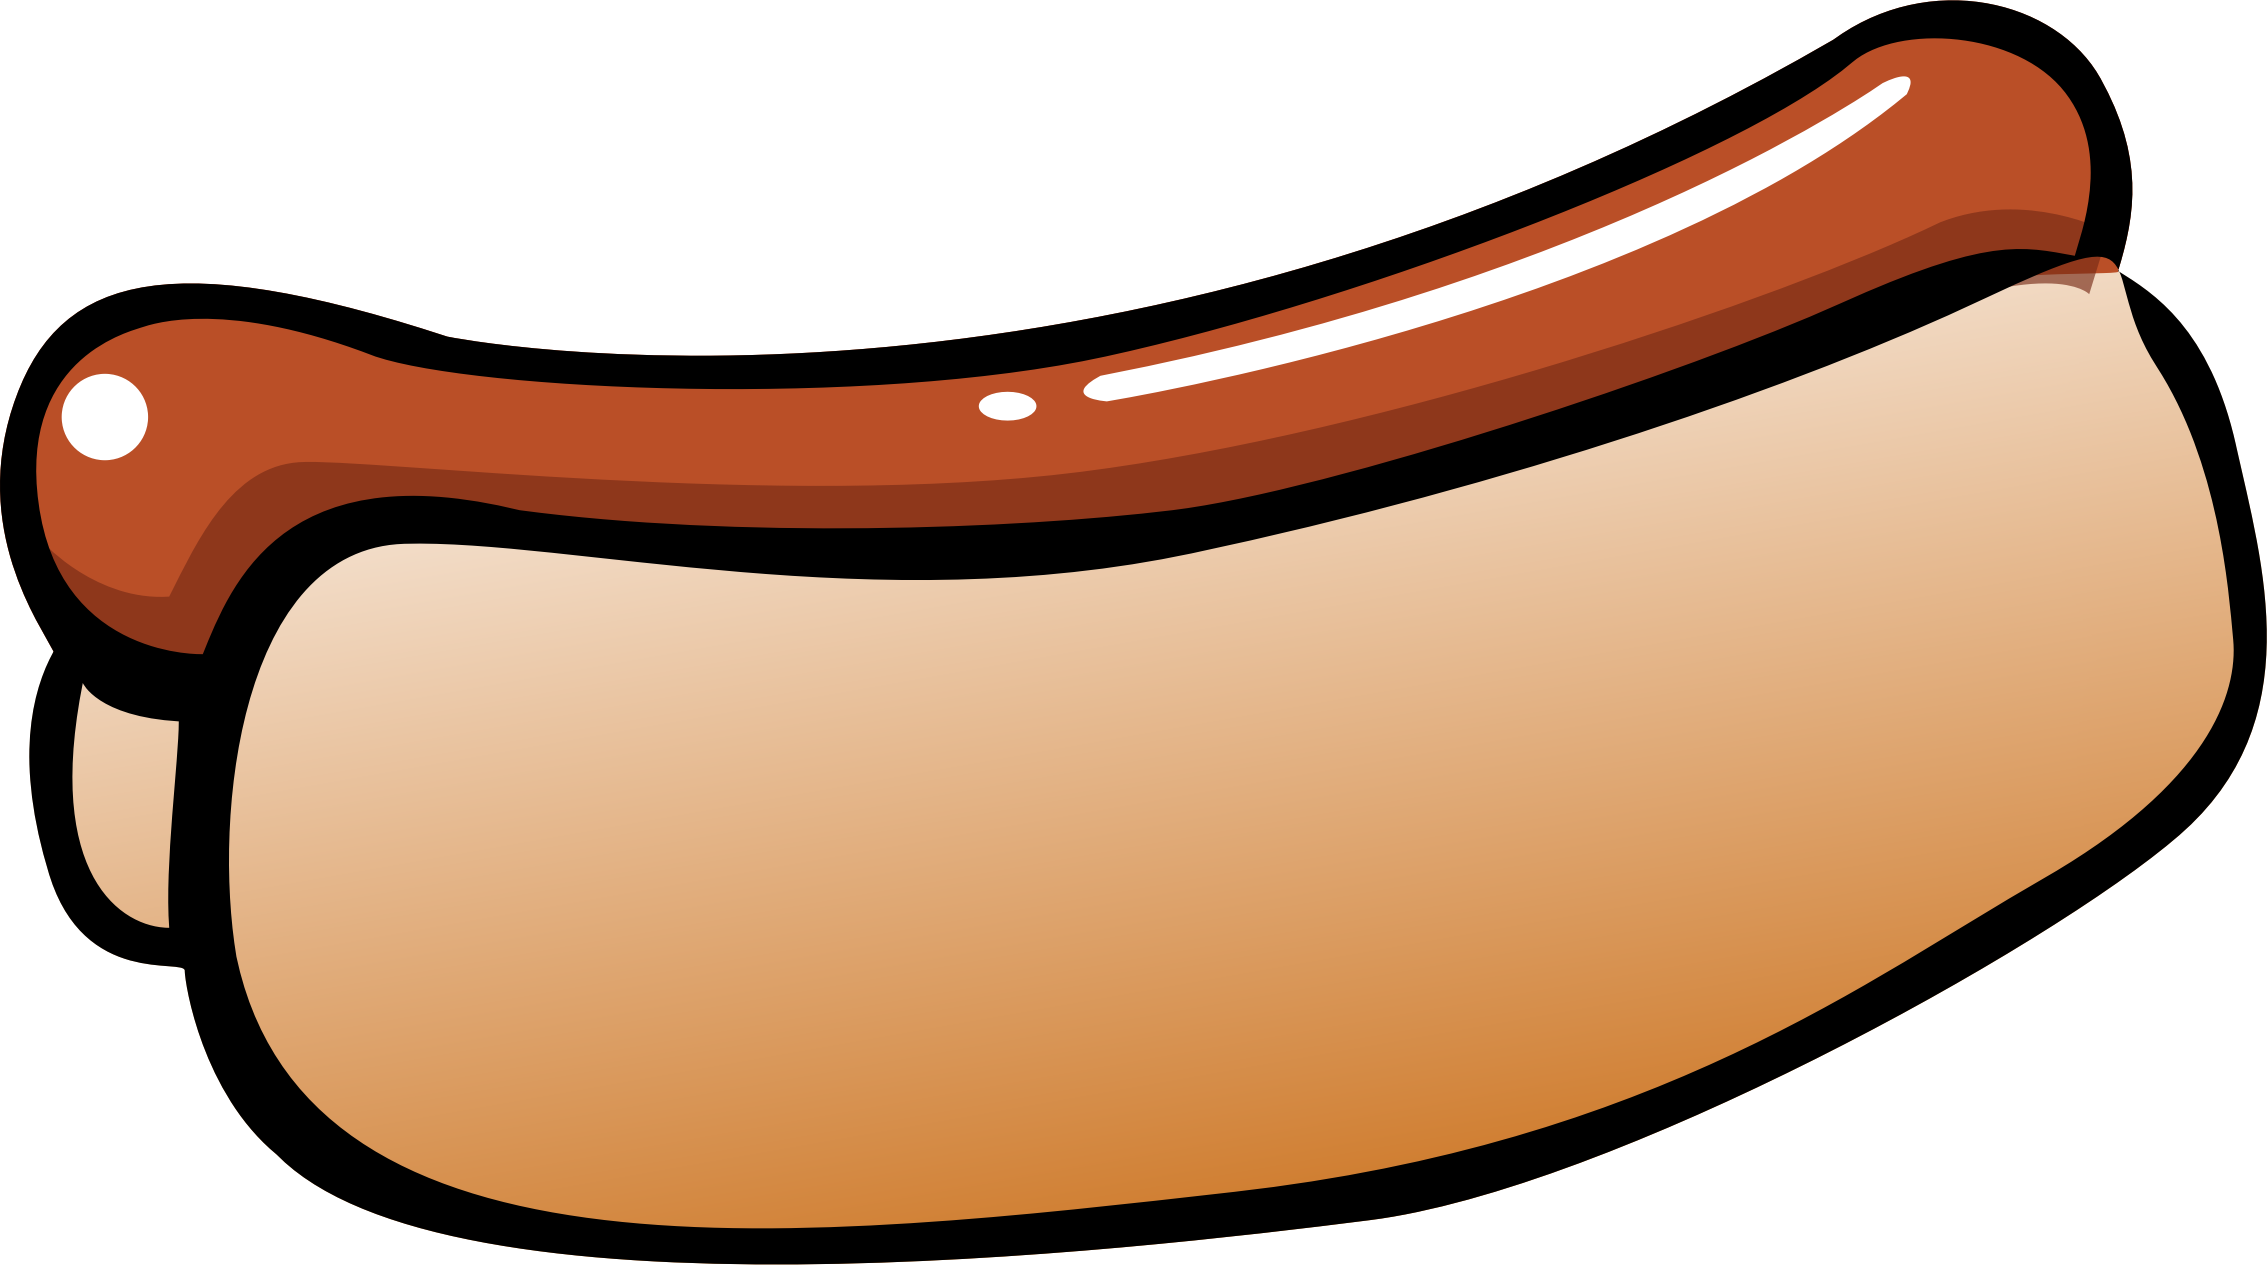 2267x1265 Hot Dog Clipart amp Look At Hot Dog Clip Art Images